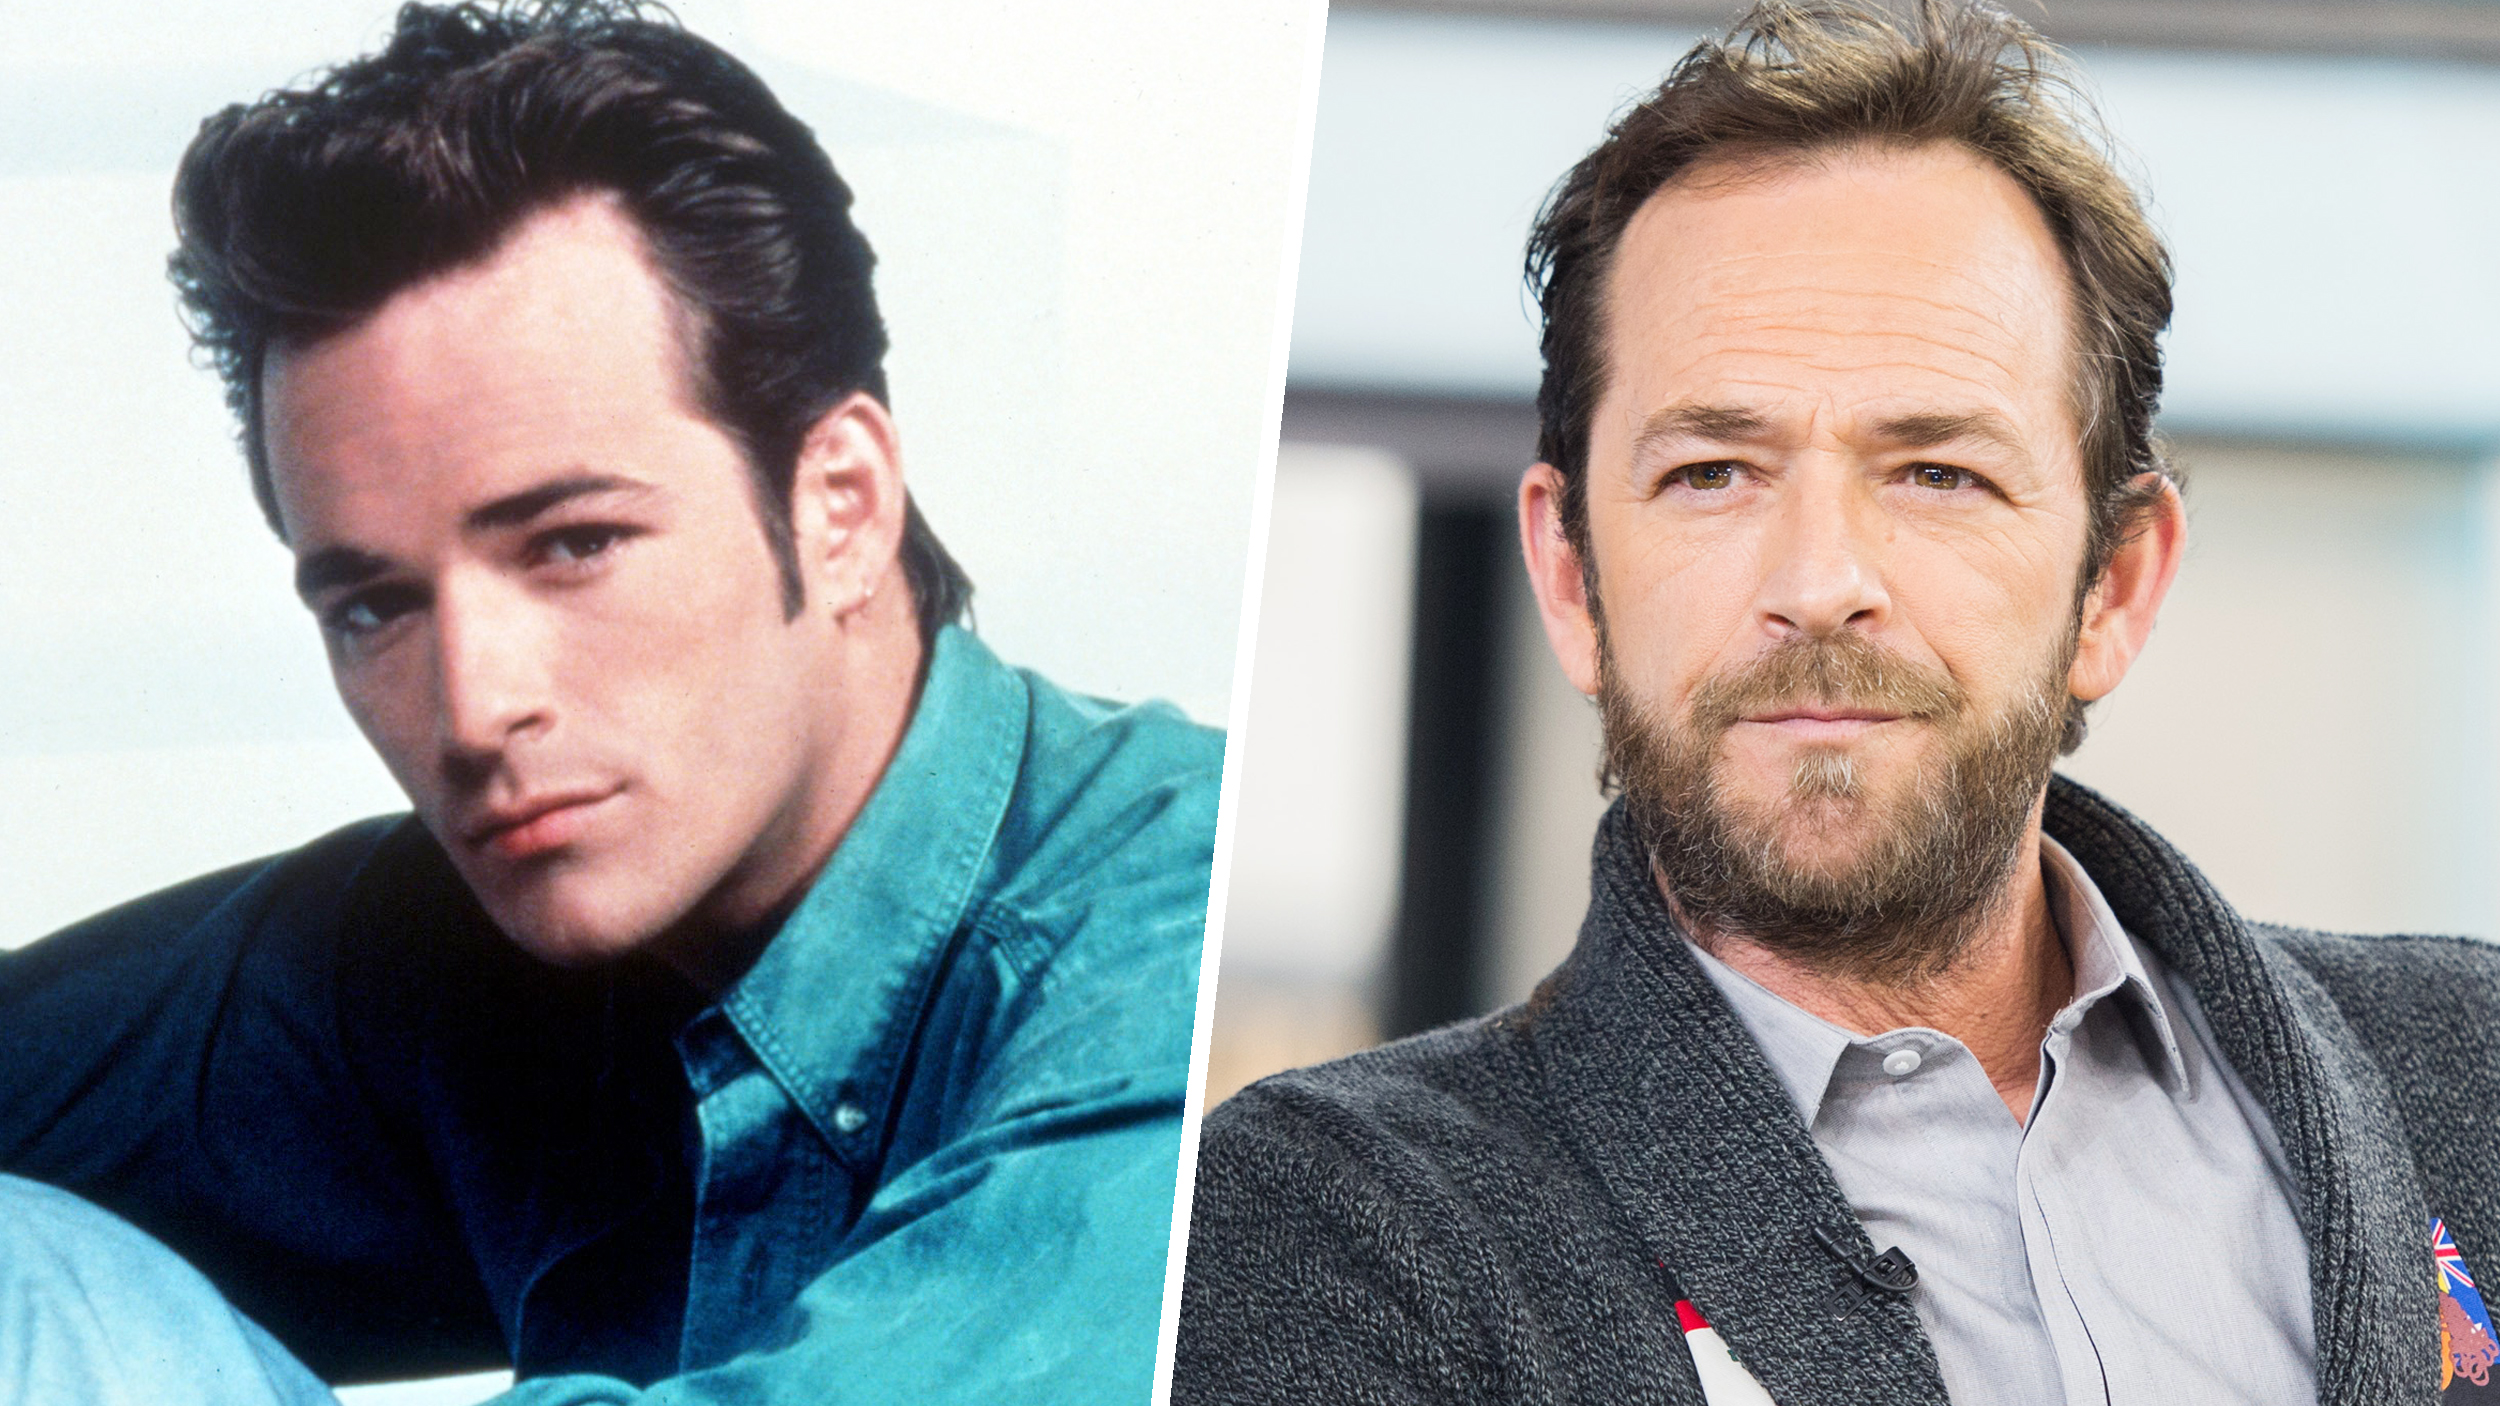 Luke Perry, actor de Beverly Hills 90210, sufre derrame cerebral